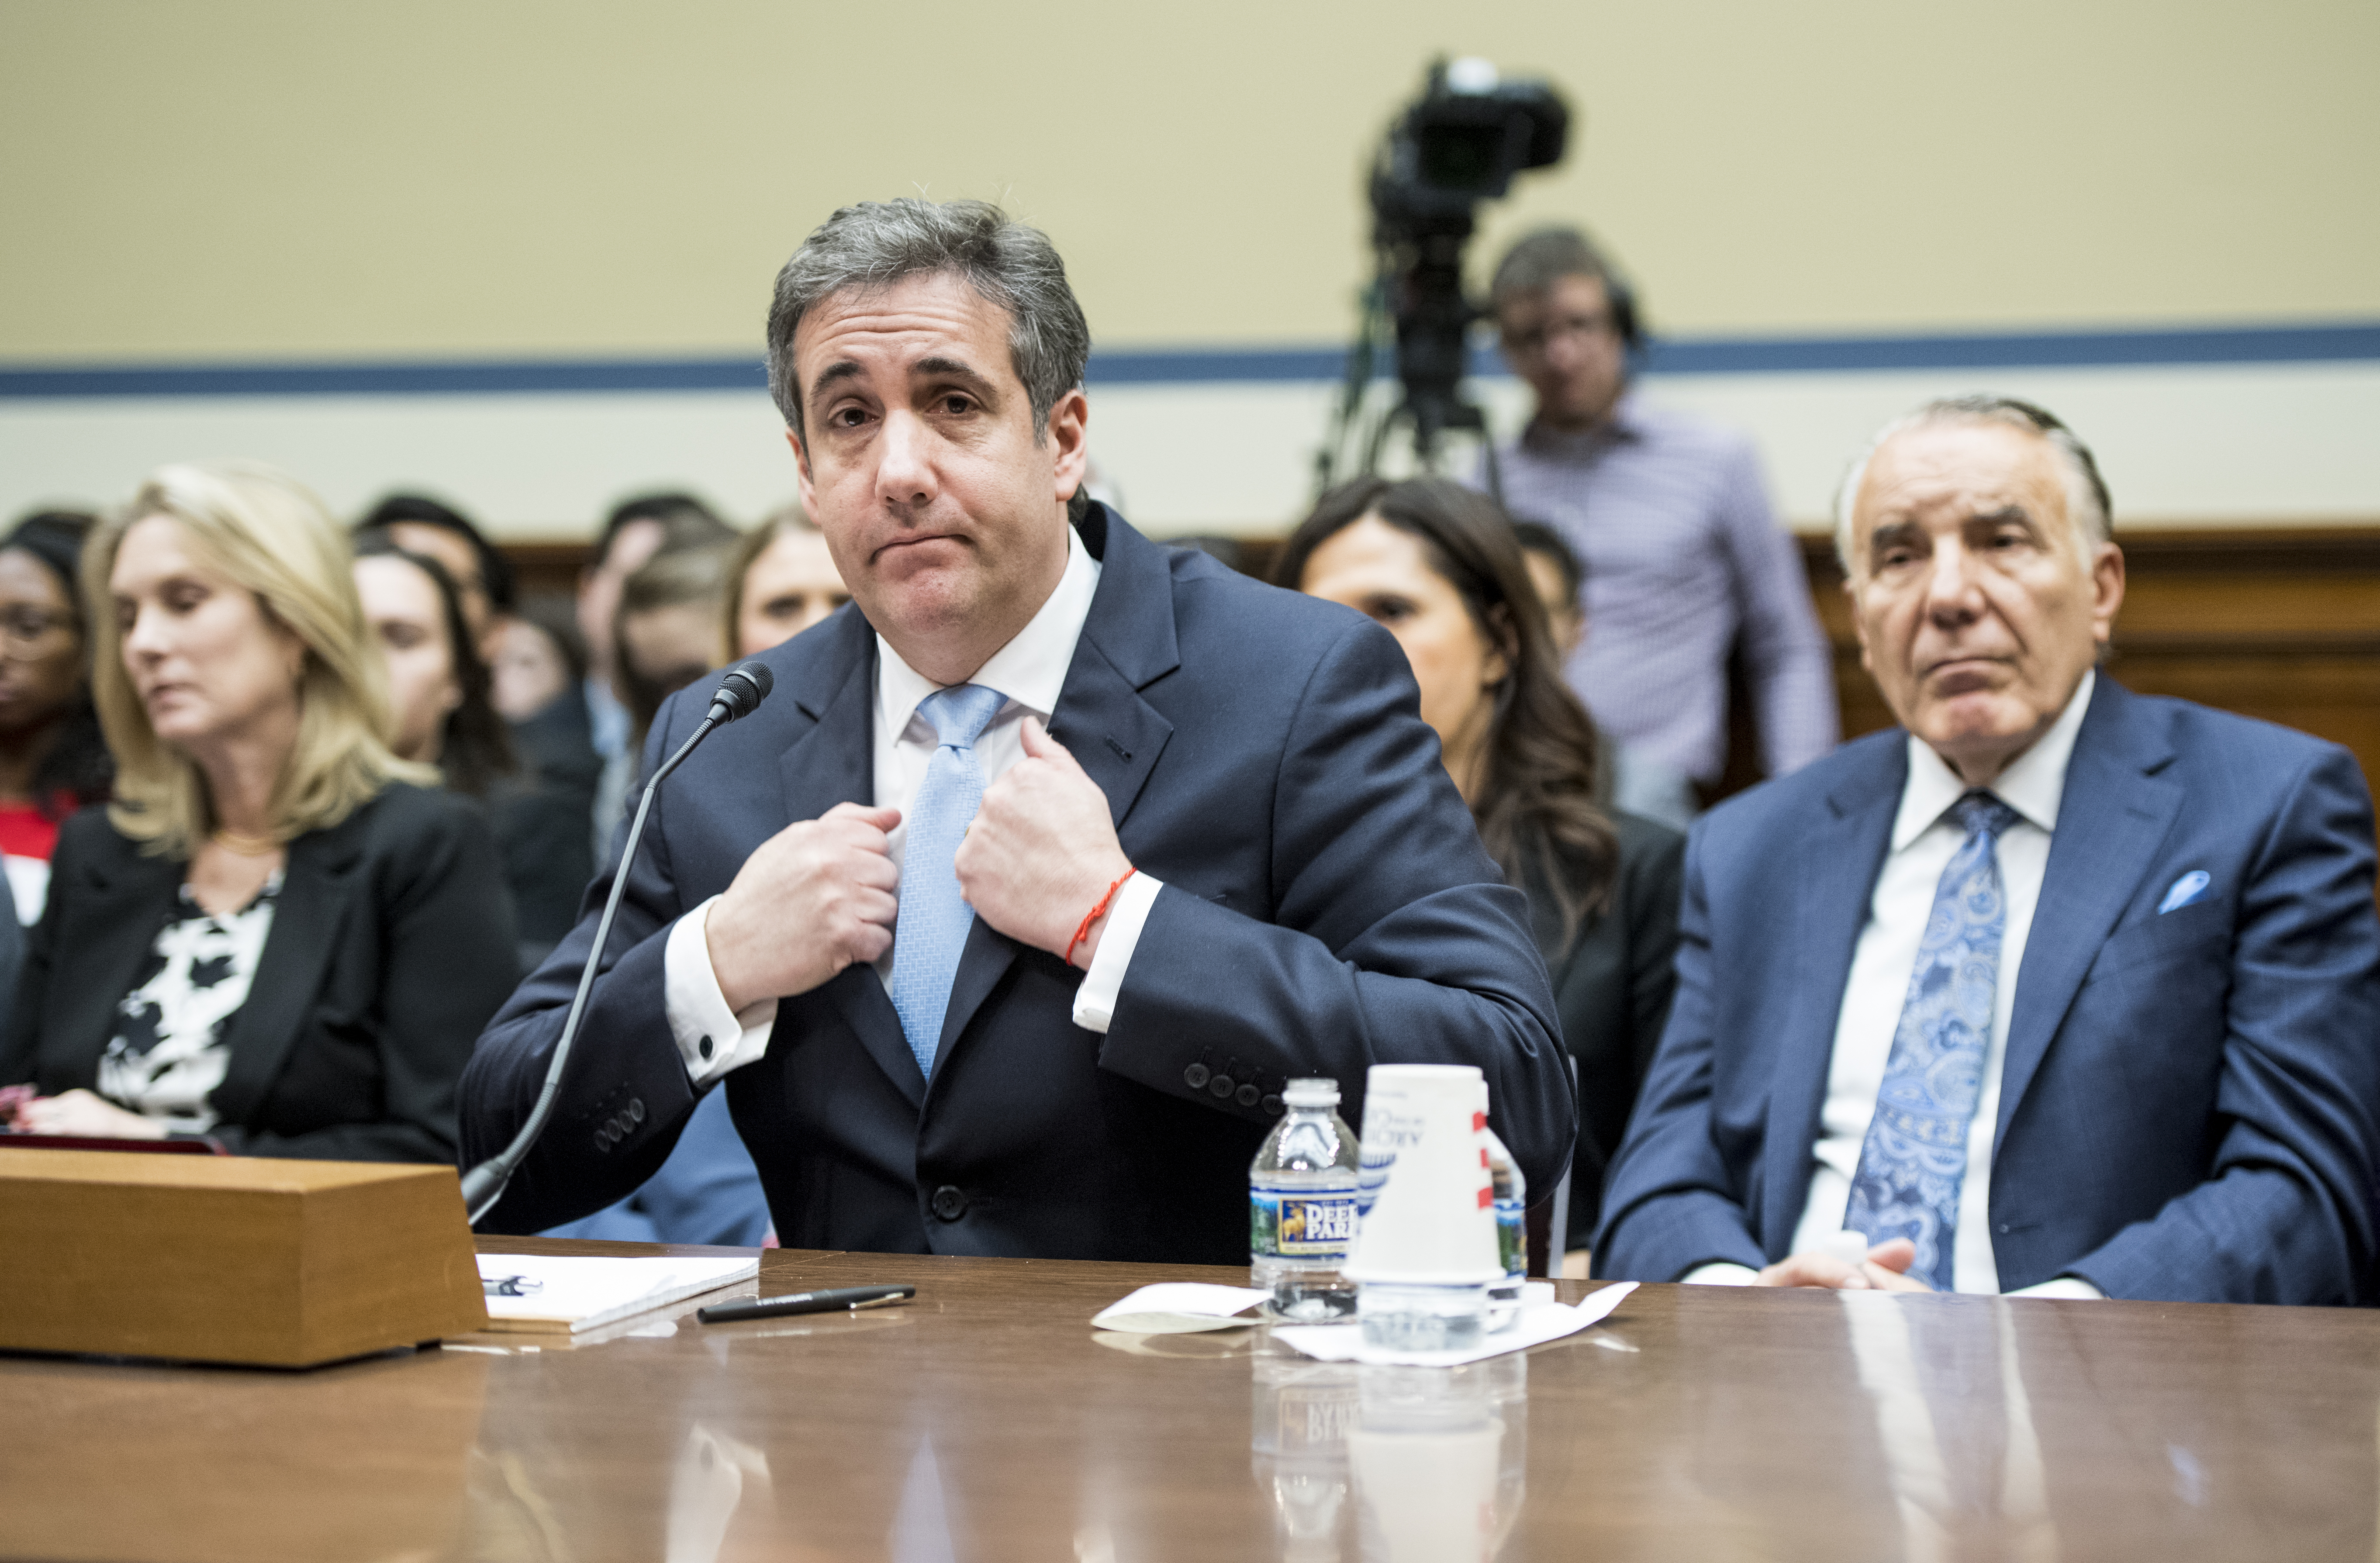 UNITED STATES - FEBRUARY 27: Michael Cohen, former attorney for President Donald Trump, testifyies during the House Oversight and Reform Committee hearing on Russian interference in the 2016 election on Wednesday, Feb. 27, 2019. (Photo By Bill Clark/CQ Roll Call)